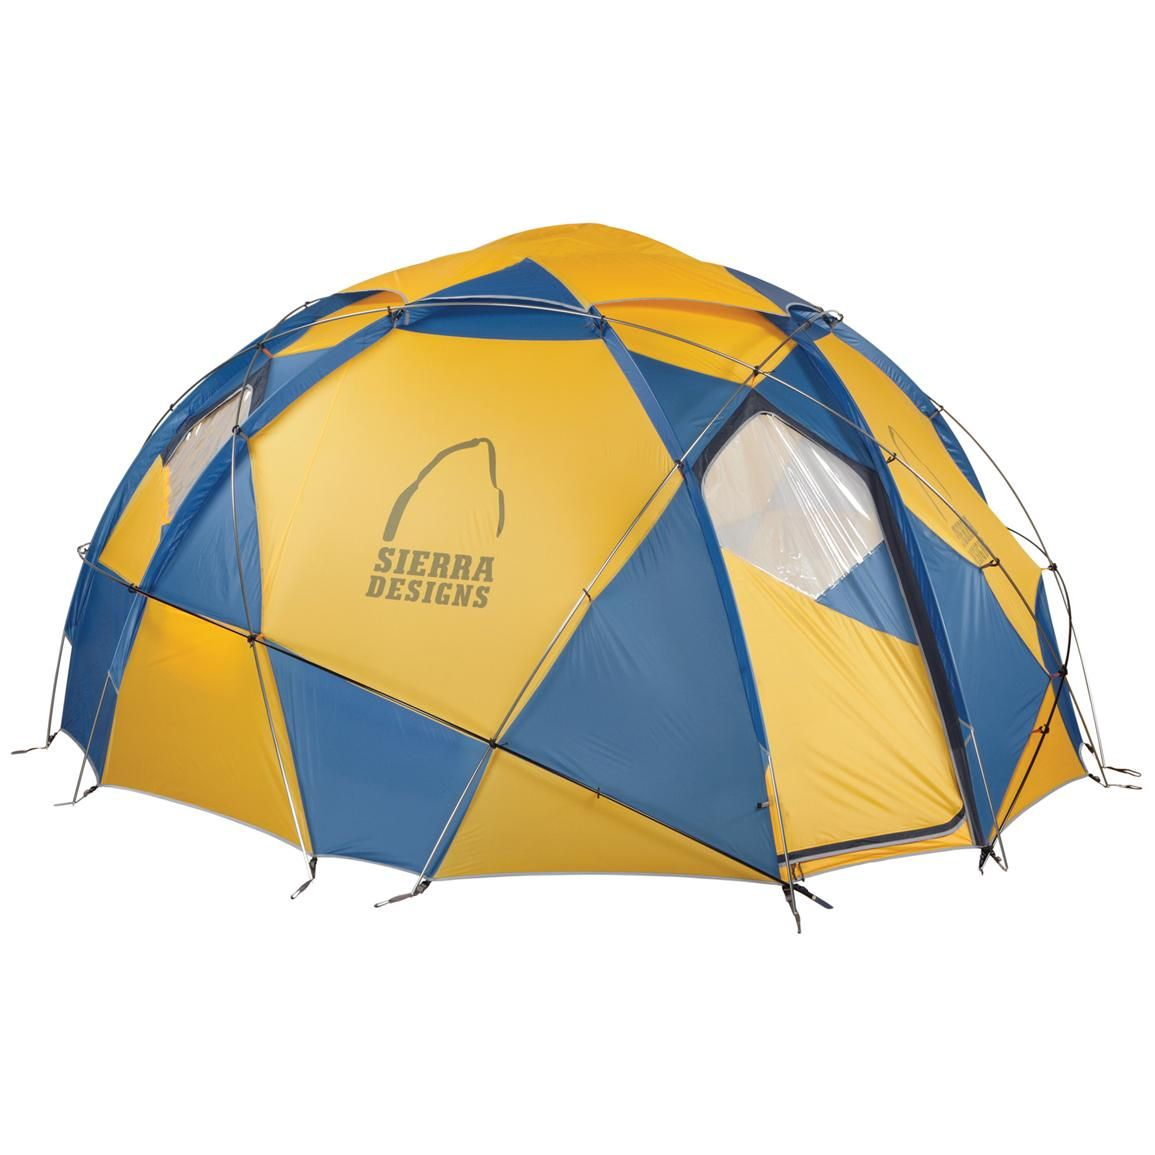 Sierra Designs® Grand Mothership 12 Four-Season Tent  sc 1 st  Pinterest & Sierra Designs® Grand Mothership 12 Four-Season Tent | camp ...